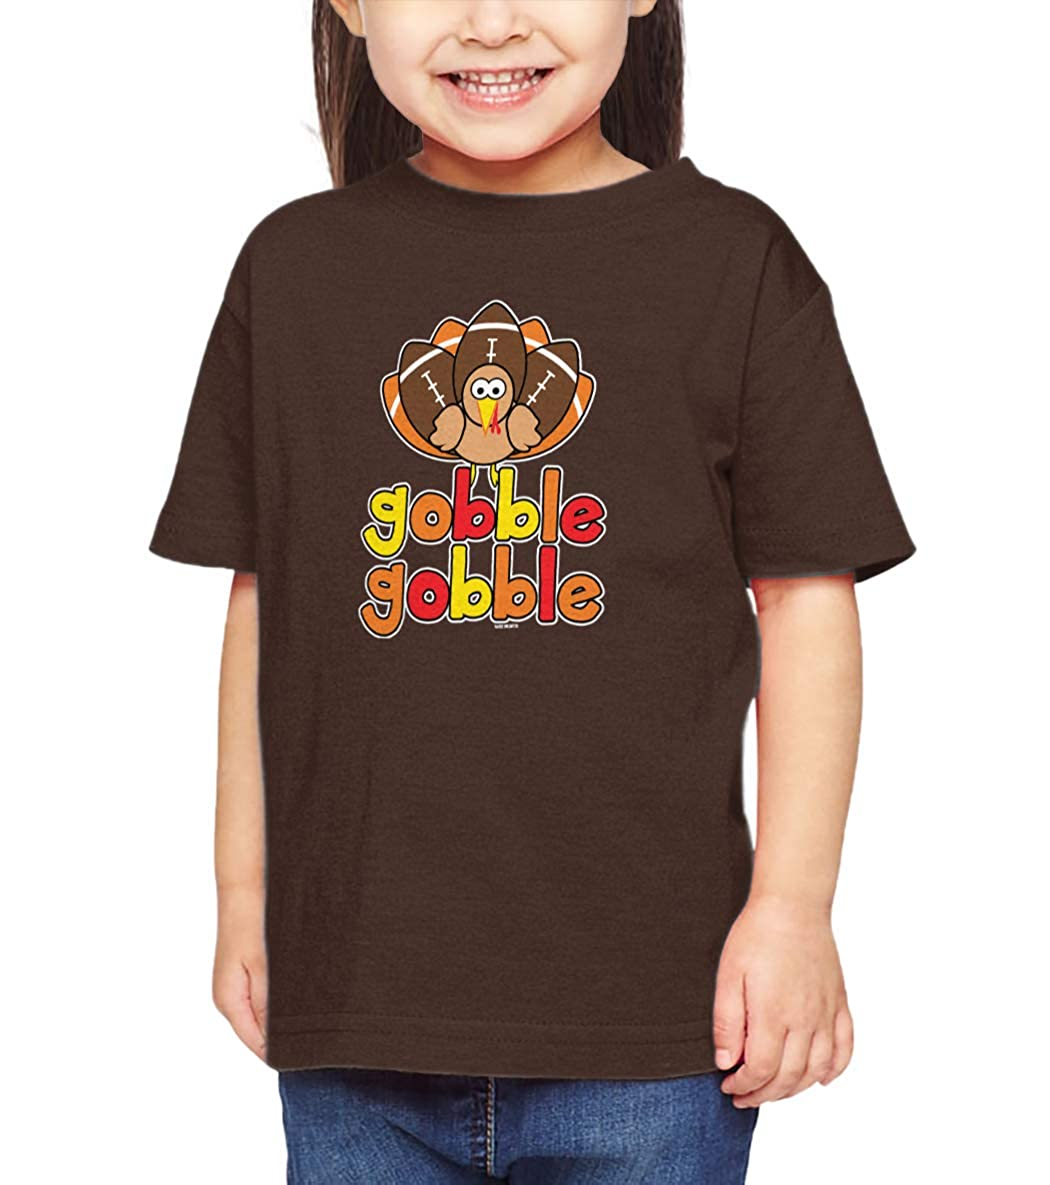 Football Turkey Autumn Infant//Toddler Cotton Jersey T-Shirt HAASE UNLIMITED Gobble Gobble